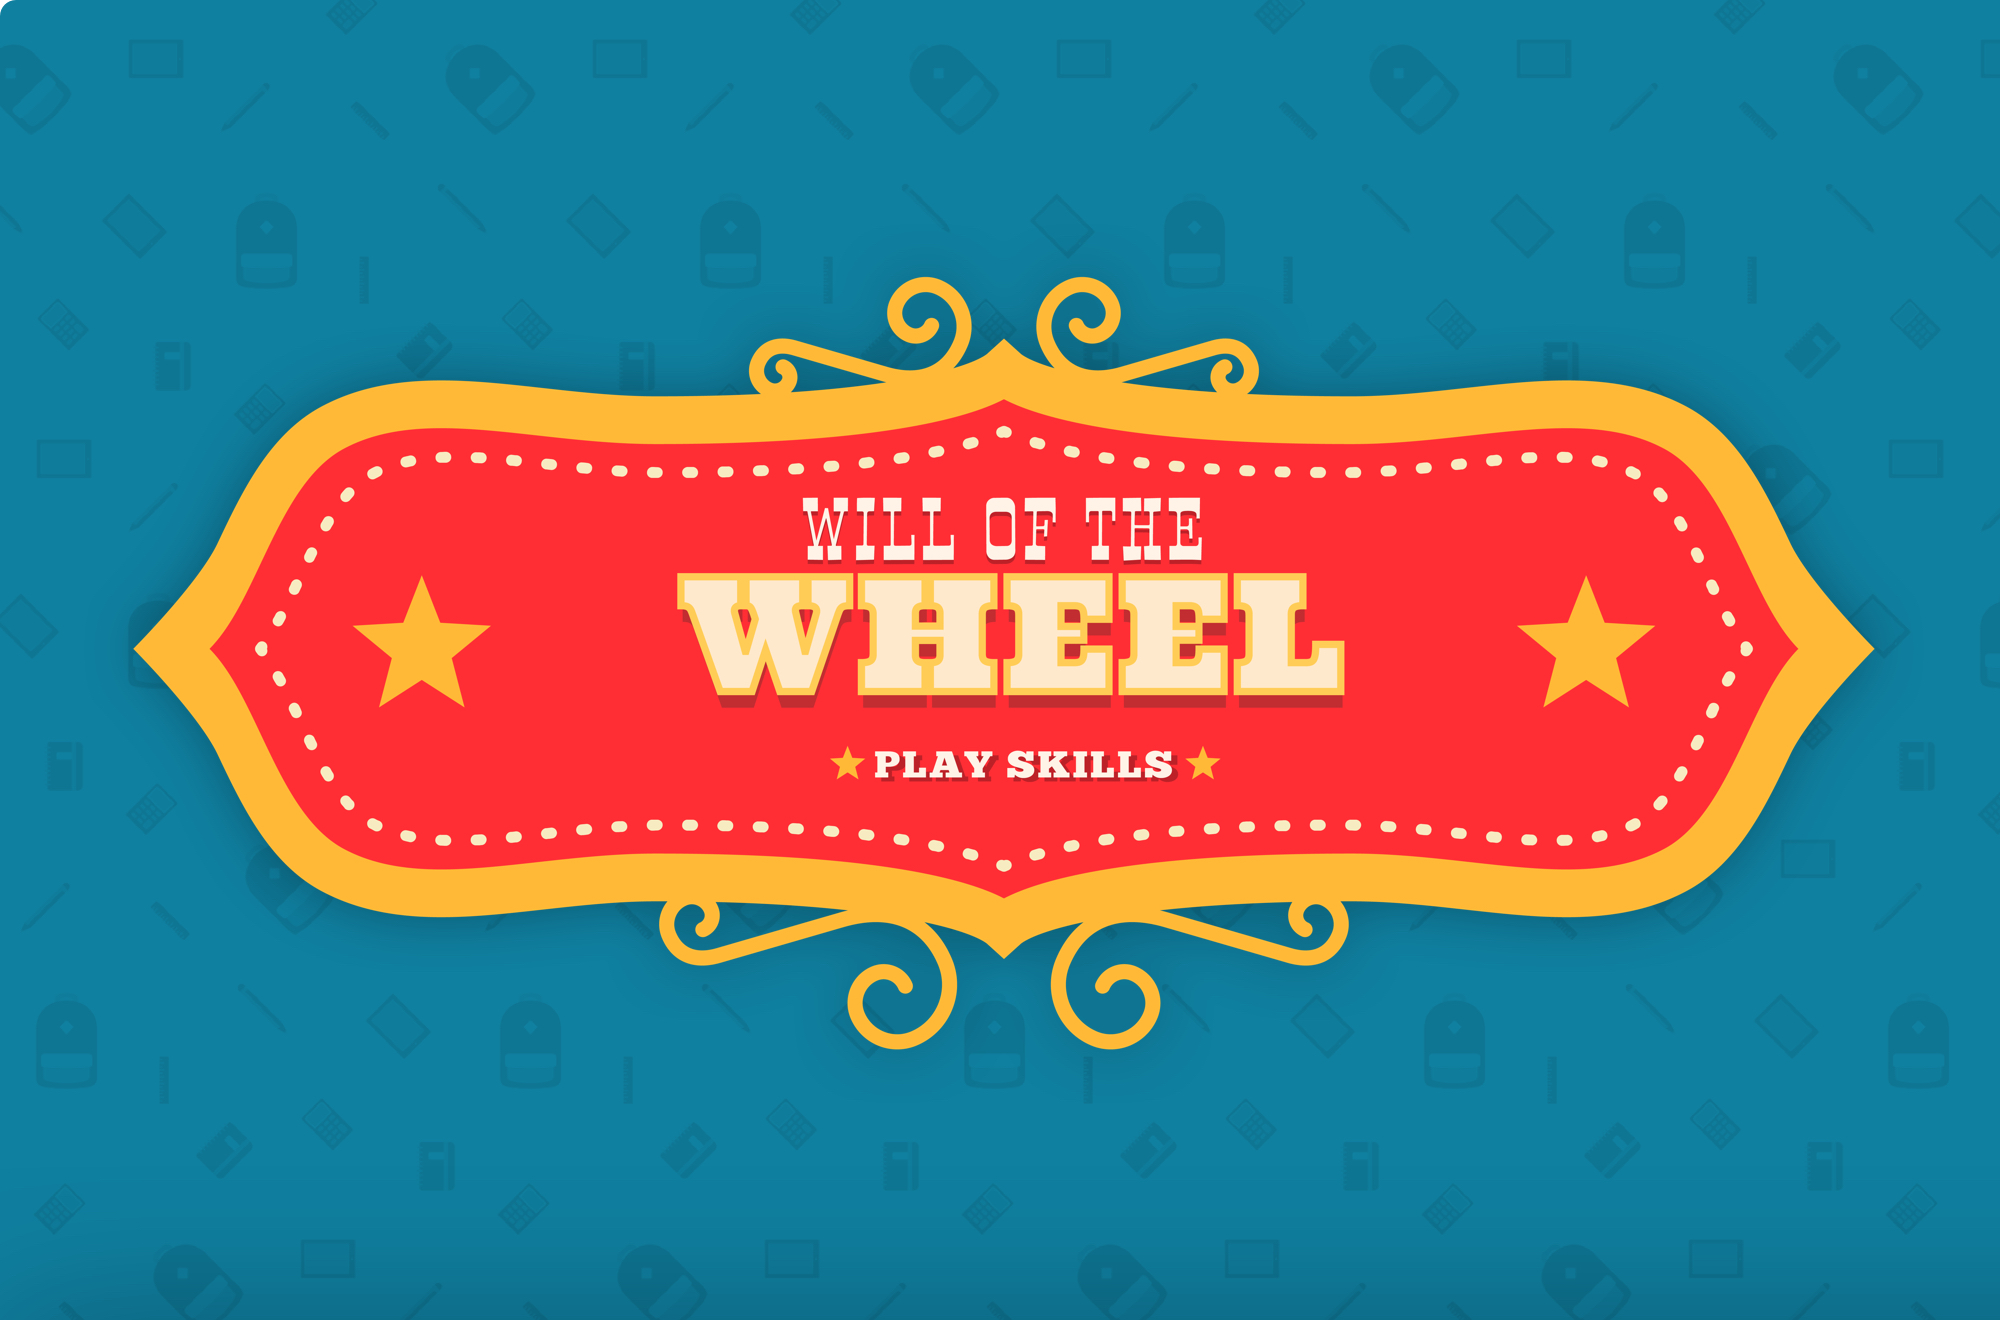 Will of the Wheel: Play Skills